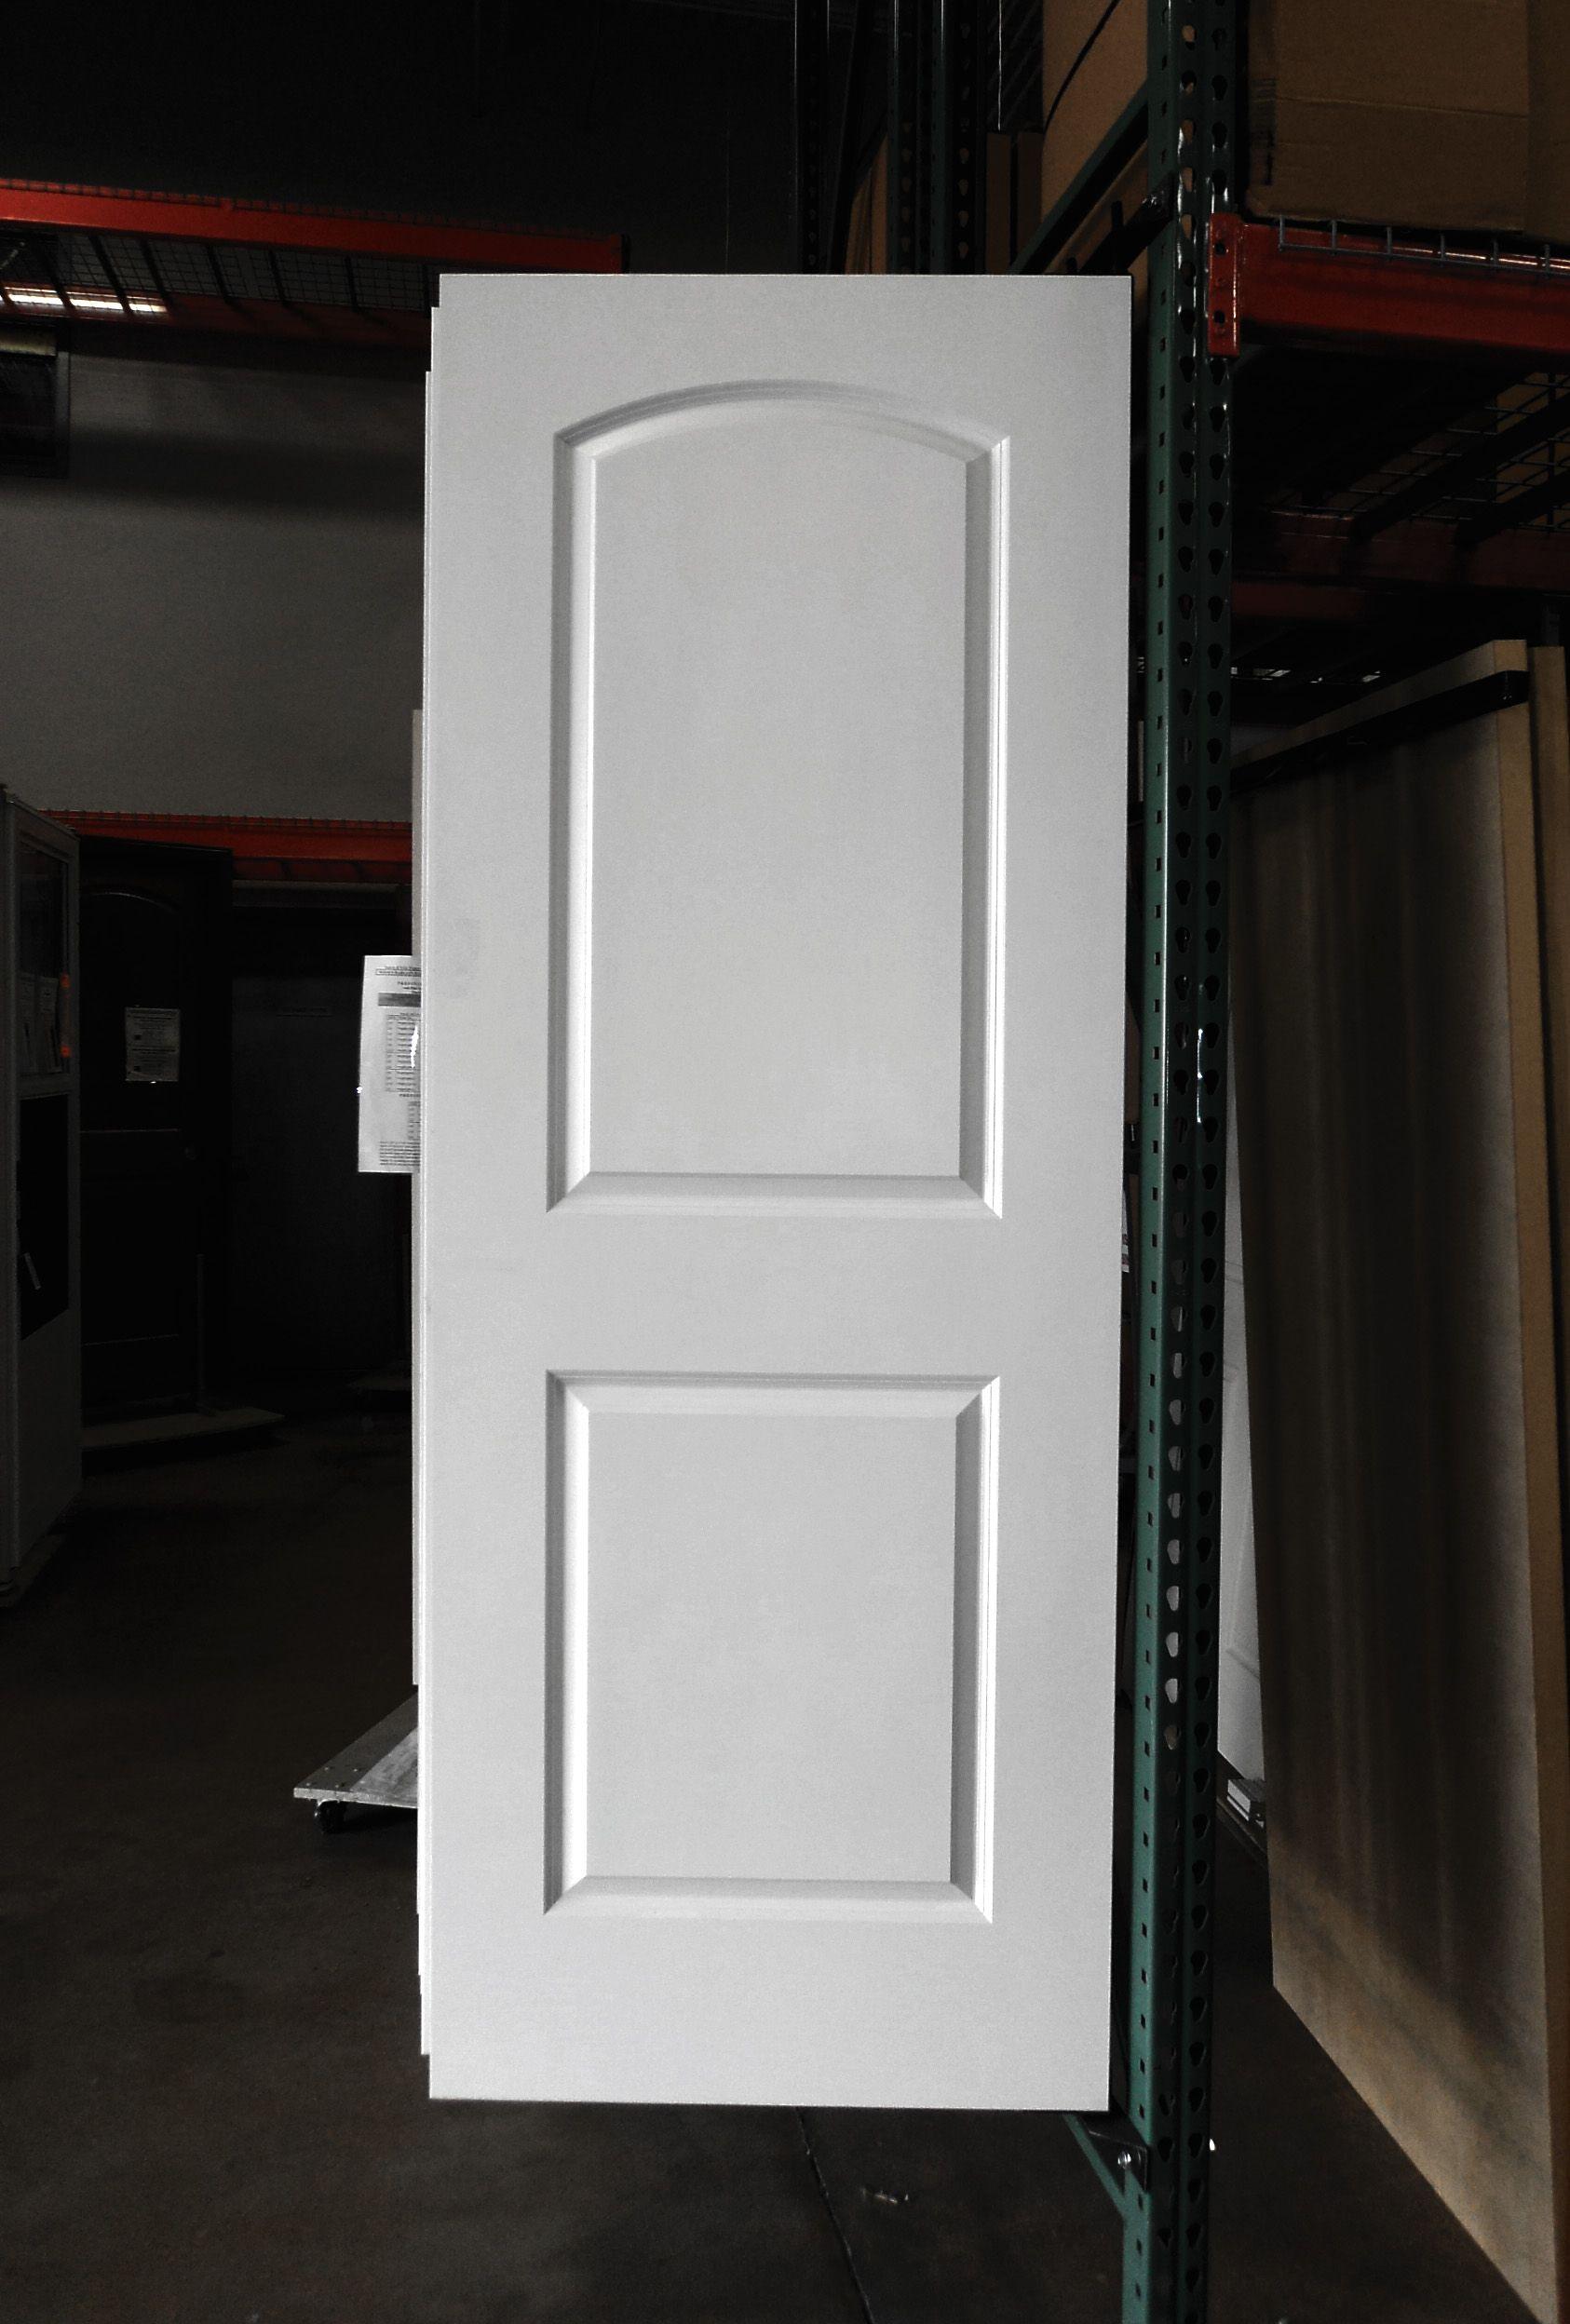 2 Panel Painted White Roman Arch Smooth Masonite Hollow Core Interior Door Interior Doors